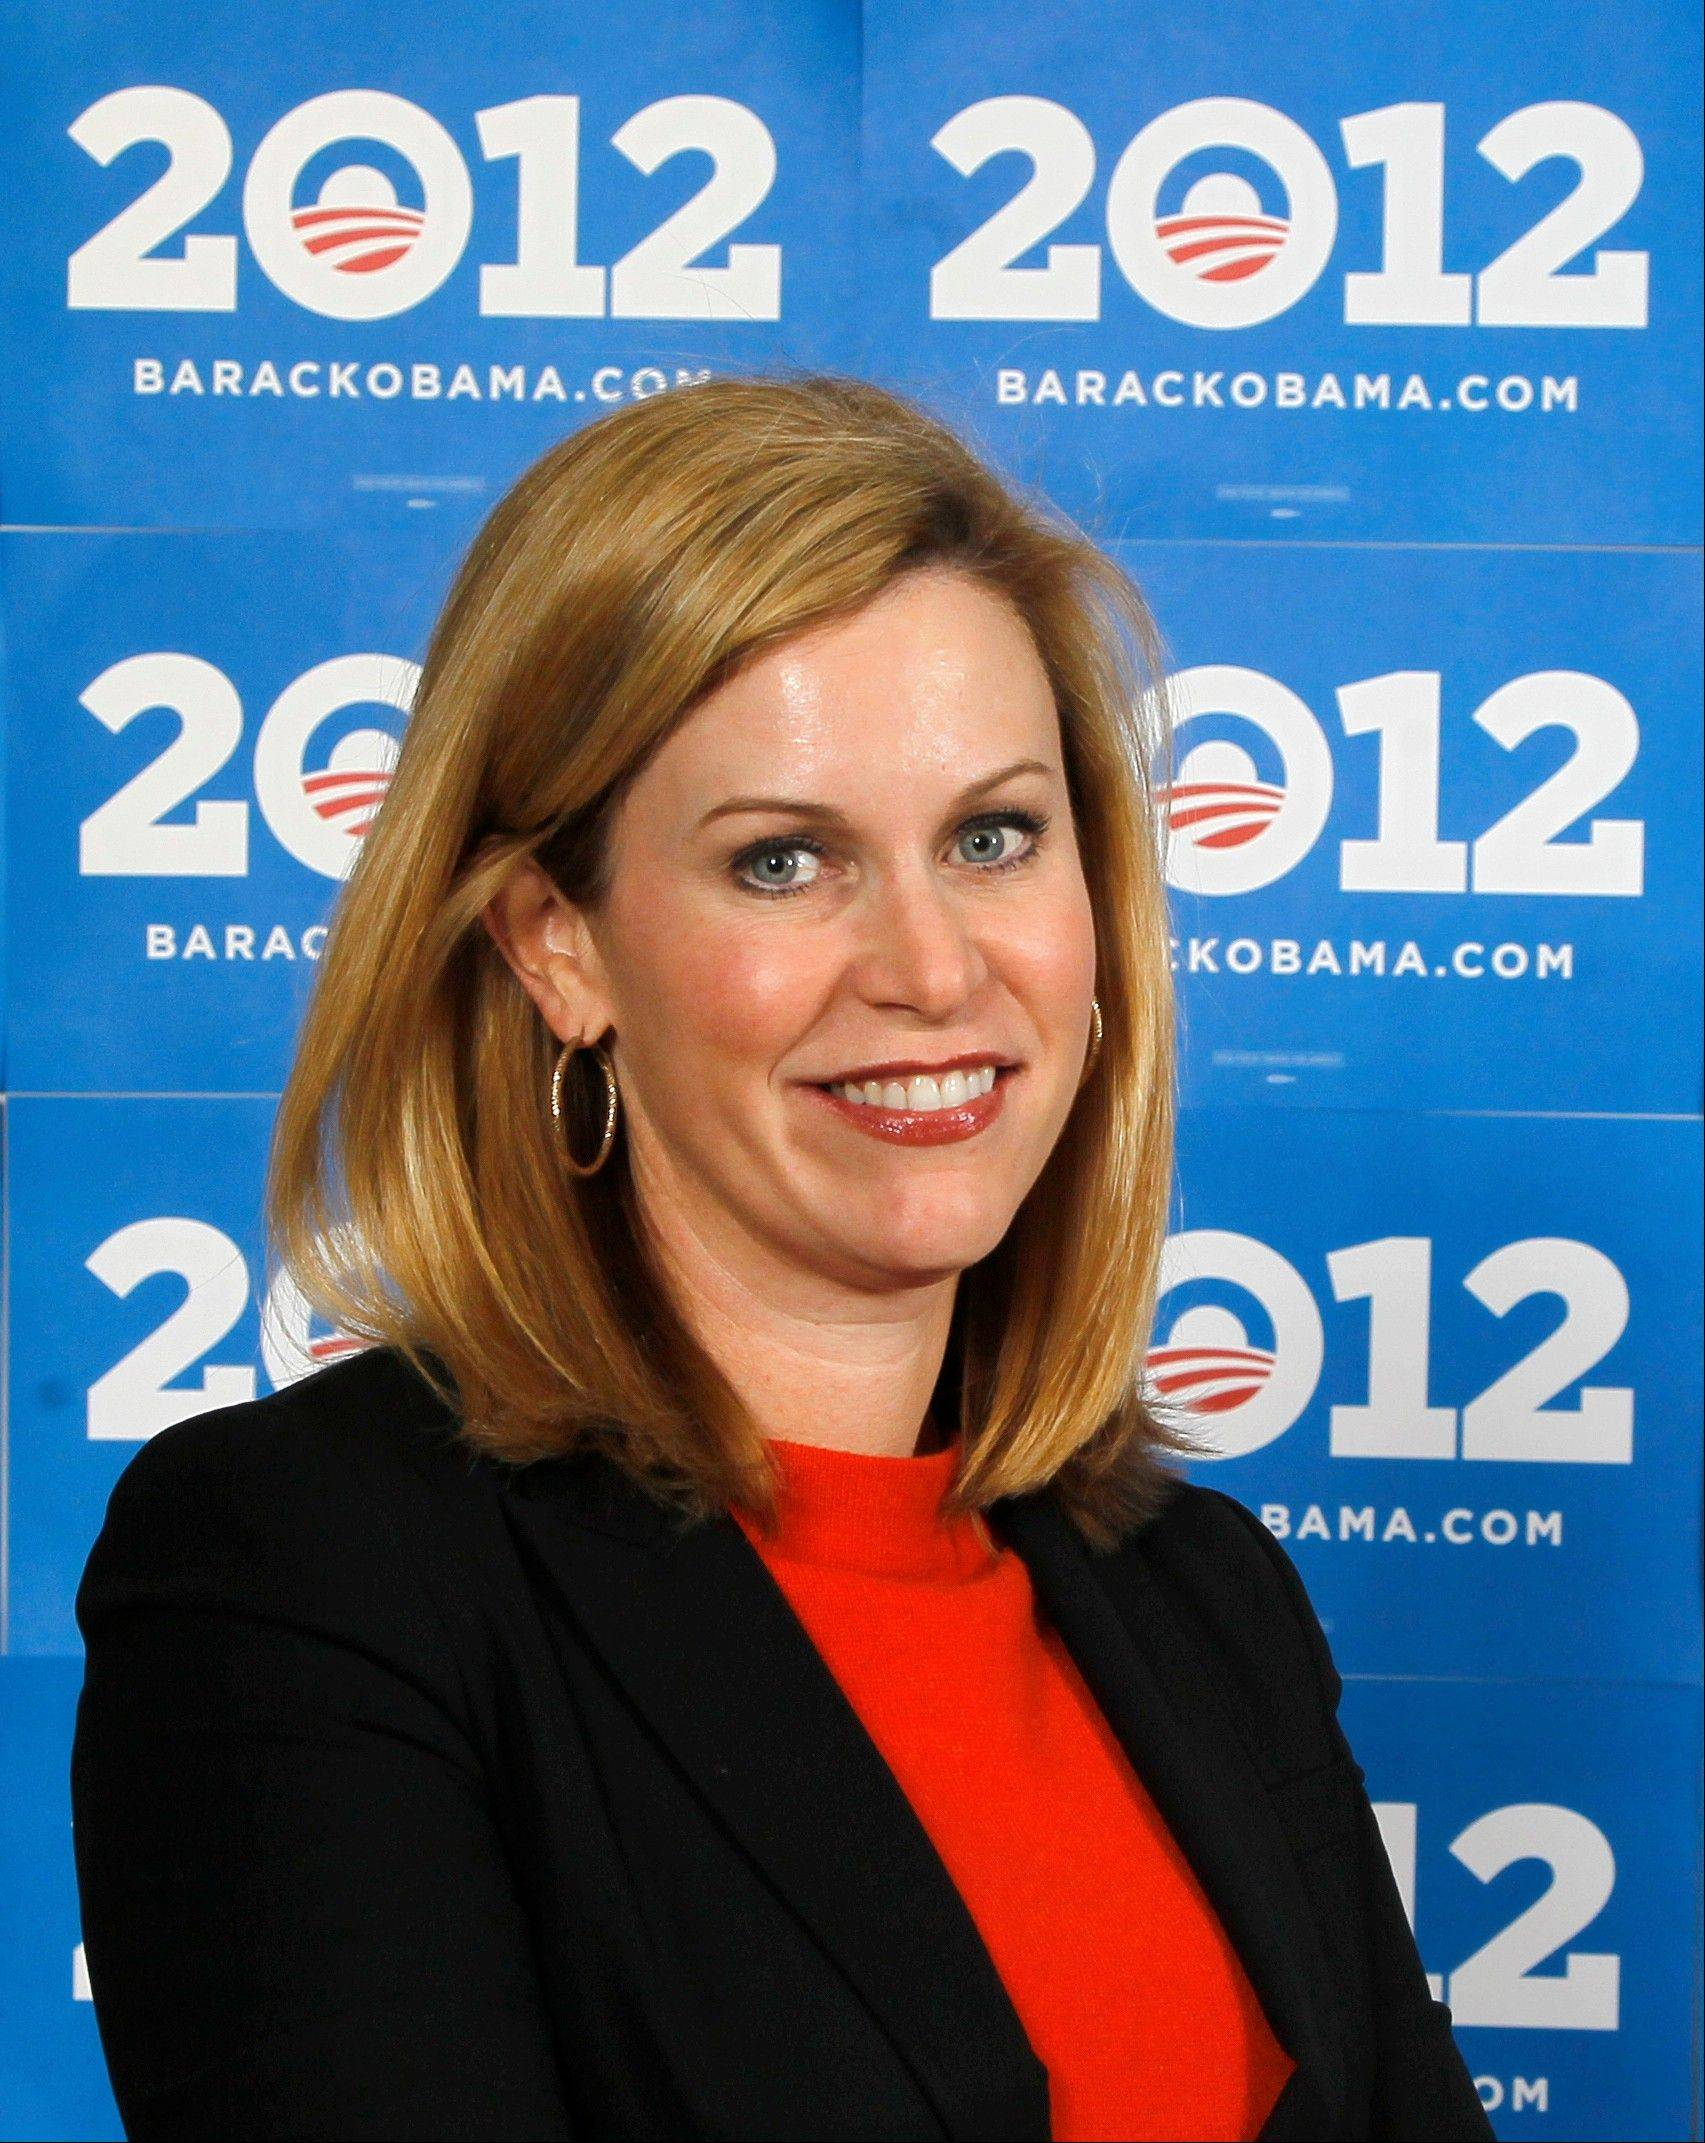 This Dec. 28, 2011, file photo shows Obama 2012 deputy campaign manager Stephanie Cutter at the Chicago headquarters. Cutter, who has become a forceful voice in the campaign, is a veteran of Kerry's presidential campaign. She has been a blunt defender of Obama's policies on cable television while criticizing Romney's business record and tenure as governor of Massachusetts, Cutter's home state.